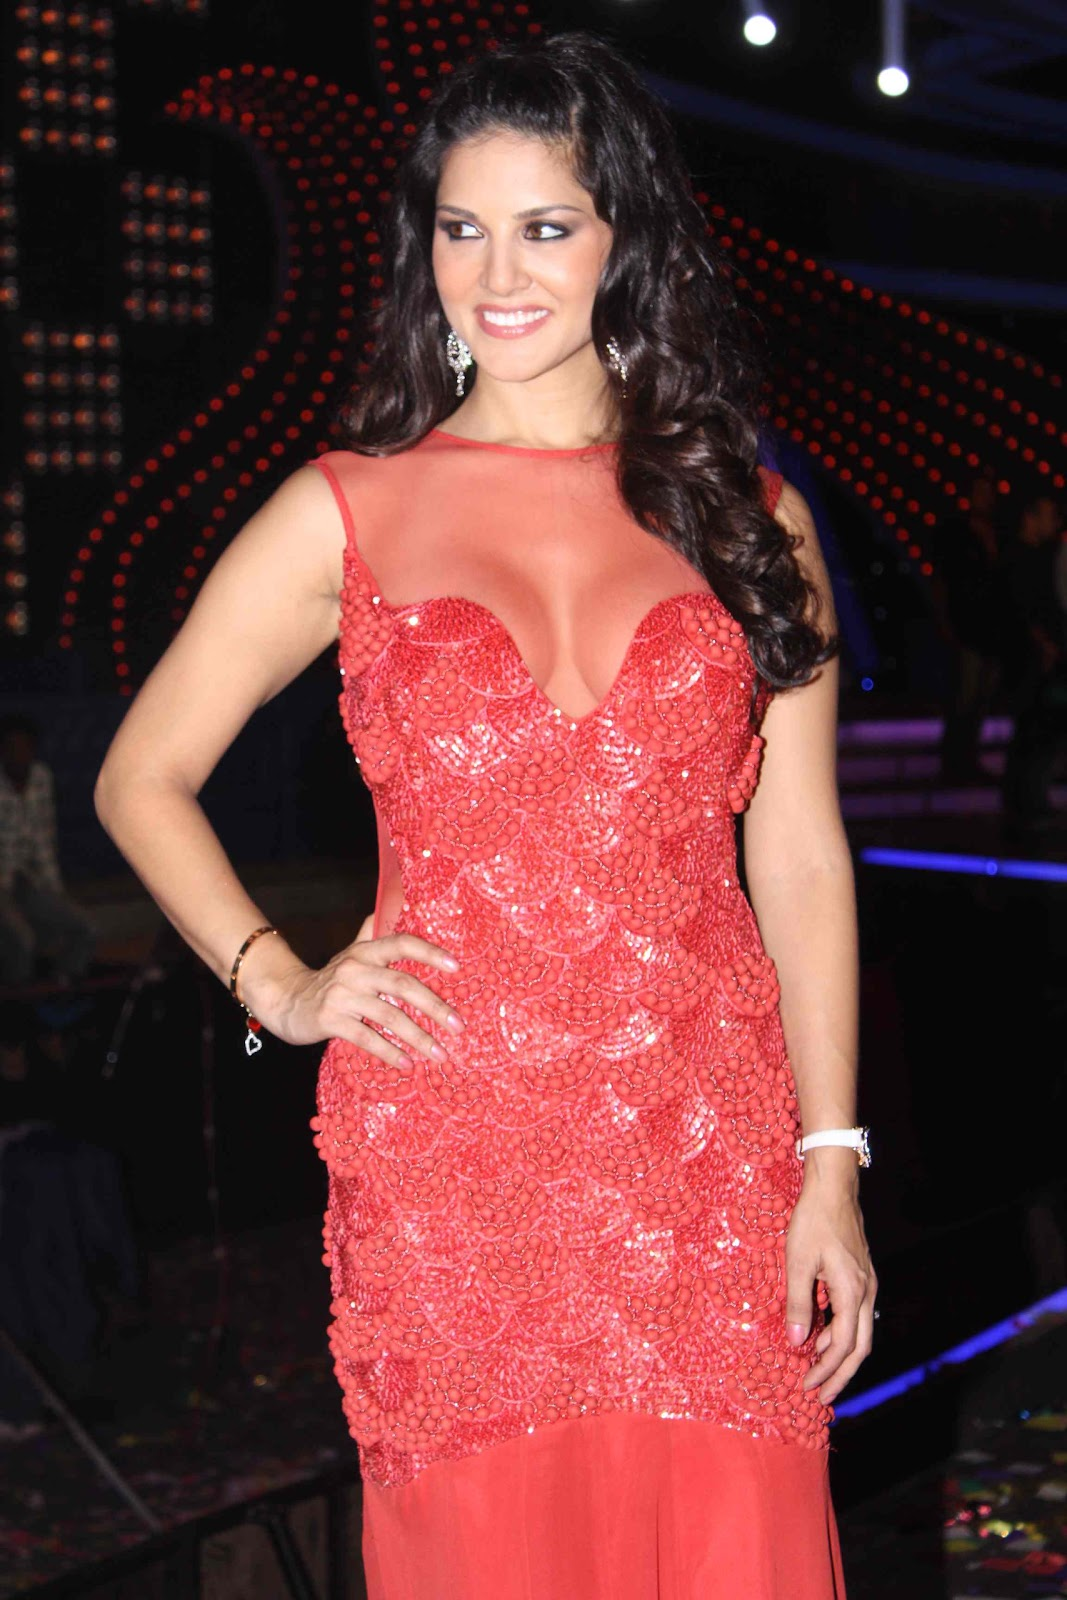 Sunny Leone in Red Gown at Bigg Boss Finale1 - Sunny Leone in Red Gown Big Boss grand finale 2012 pics